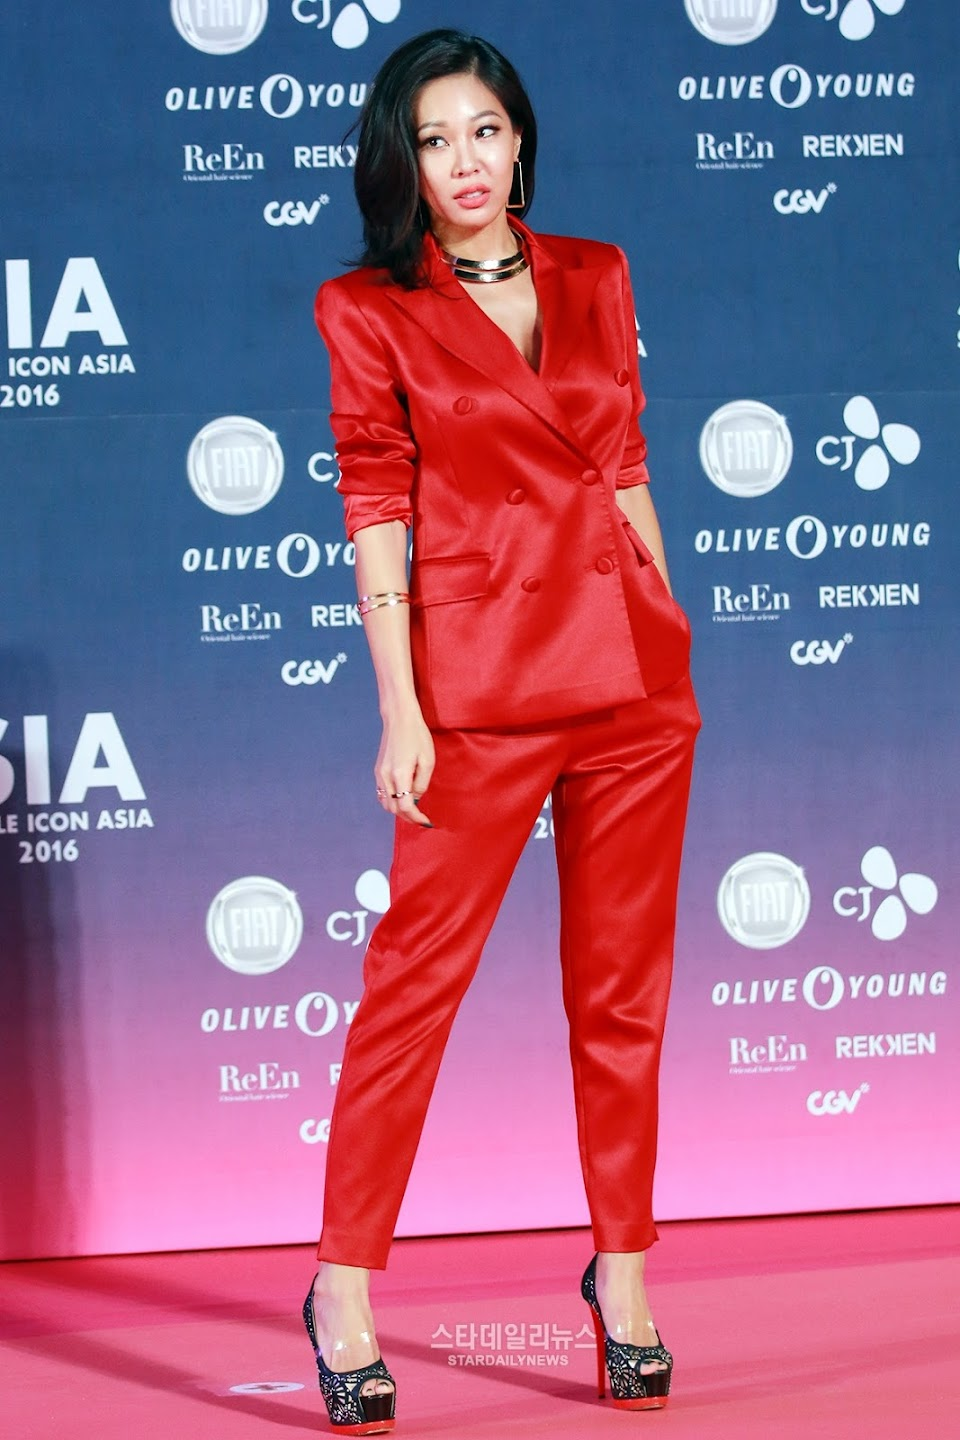 style-icon-asia-2016-star-daily-news_jessi